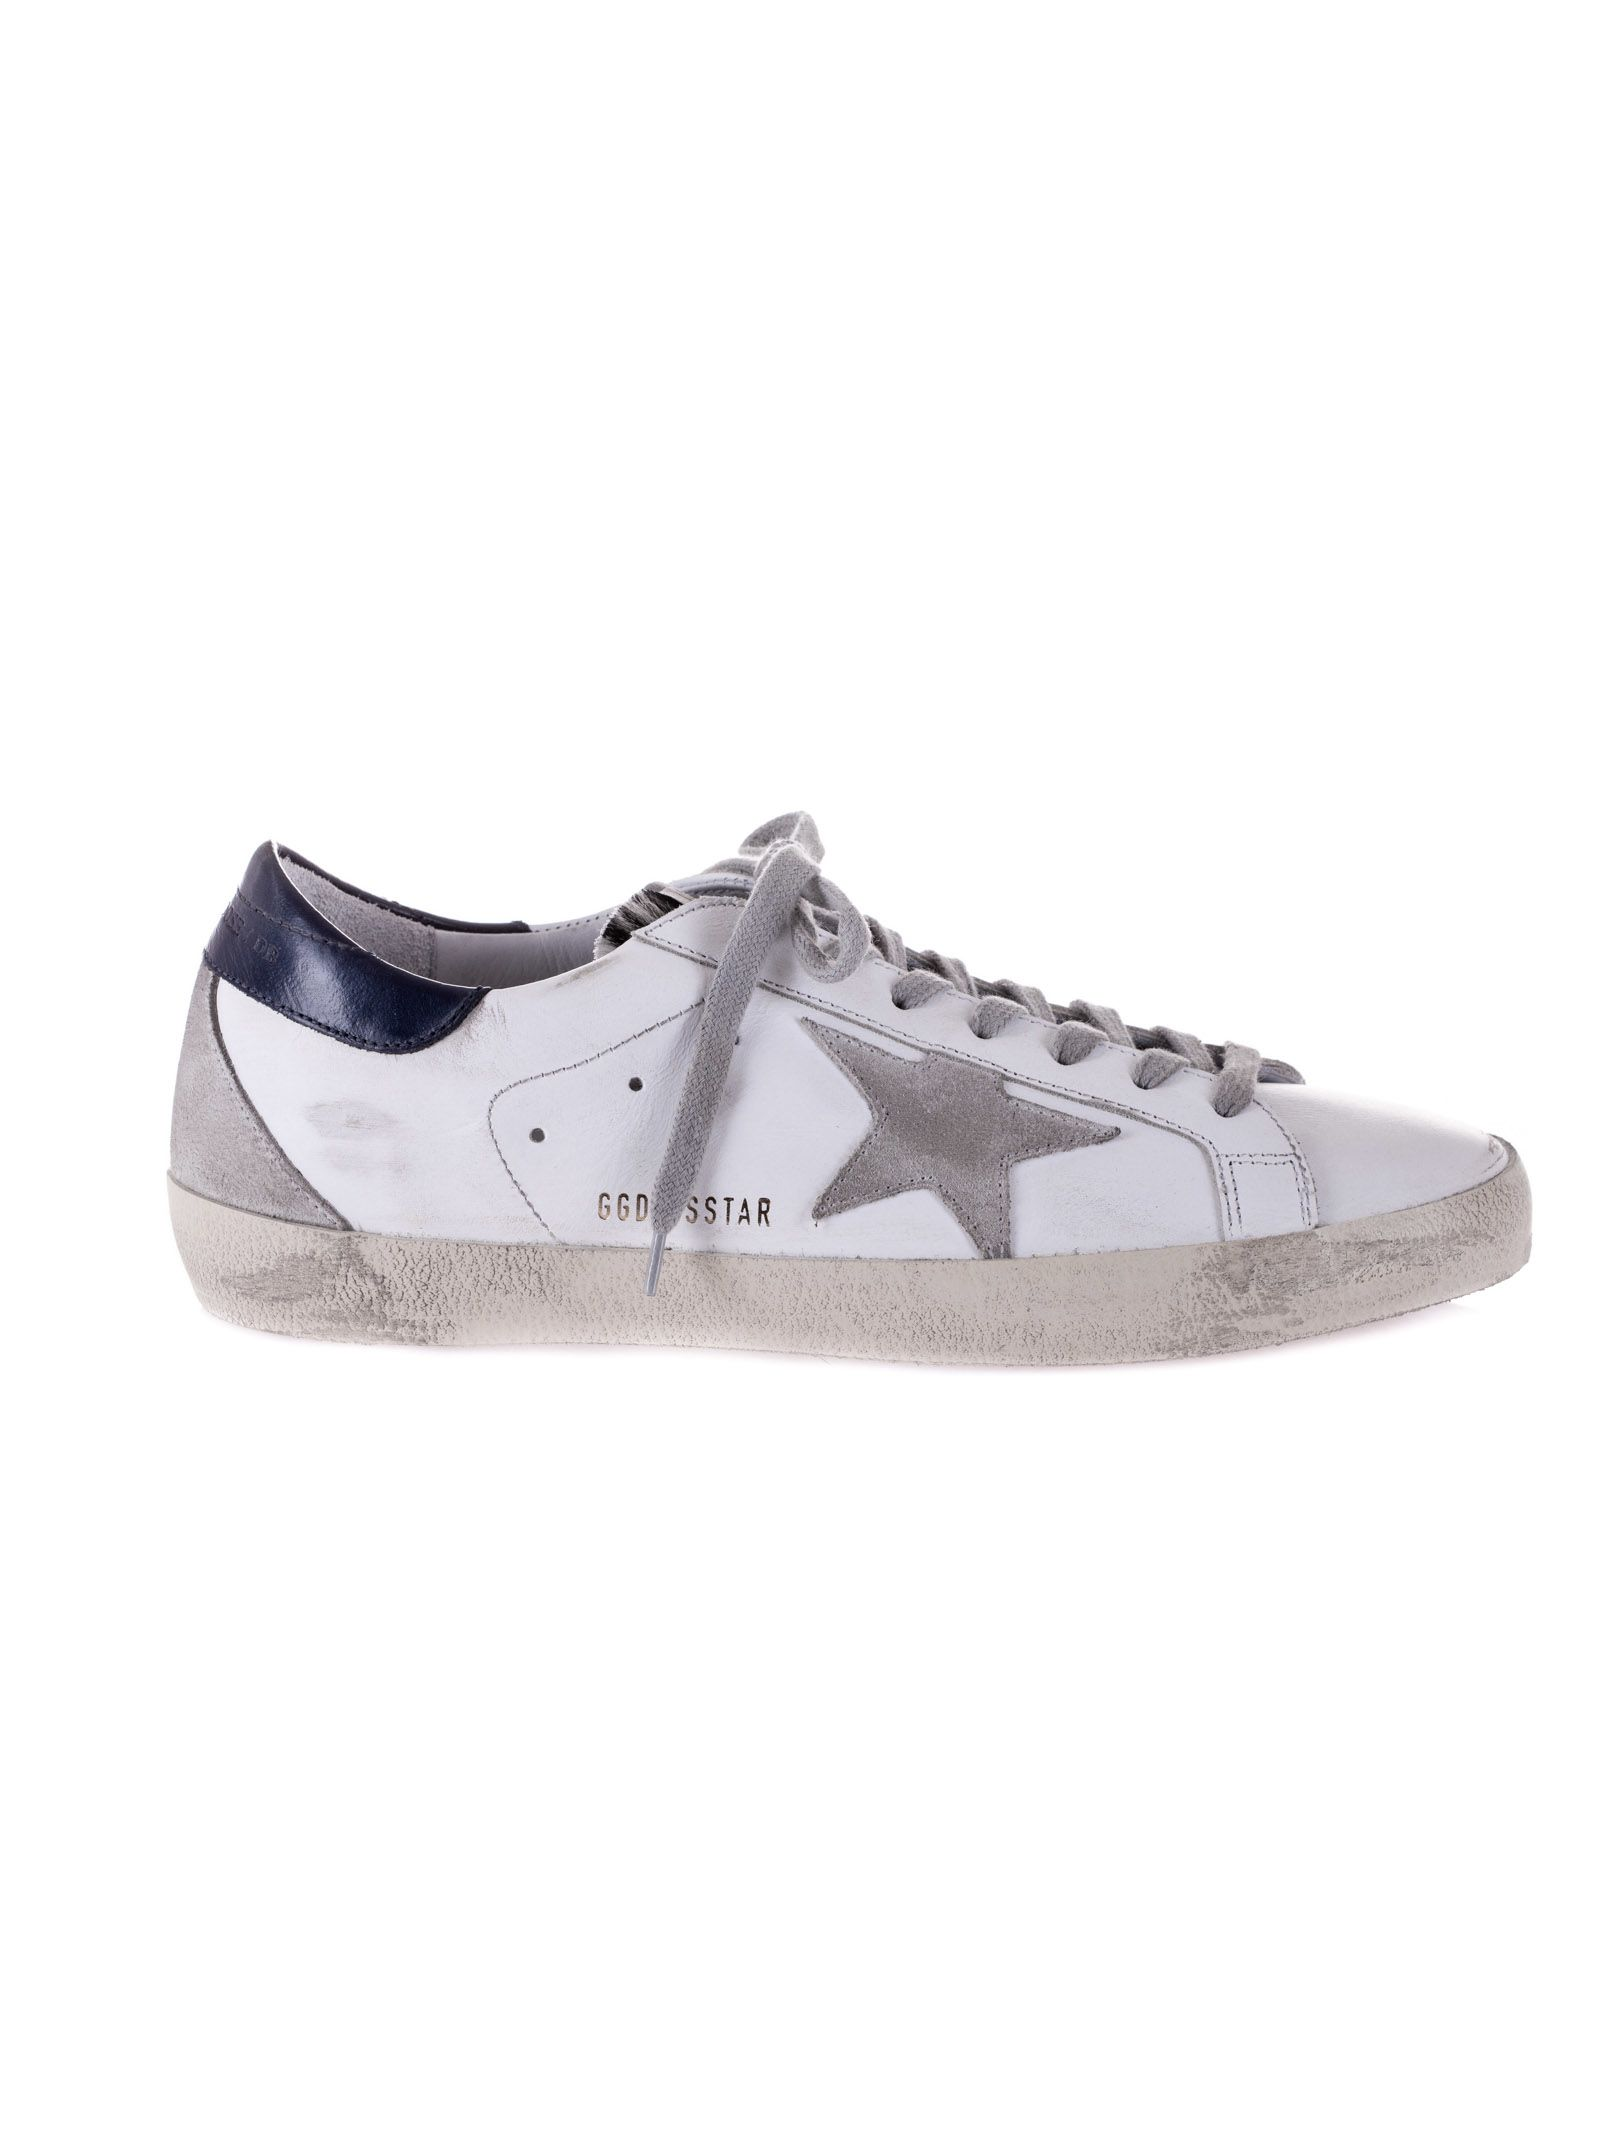 Golden Goose Superstar Sneakers - White/Blue ...